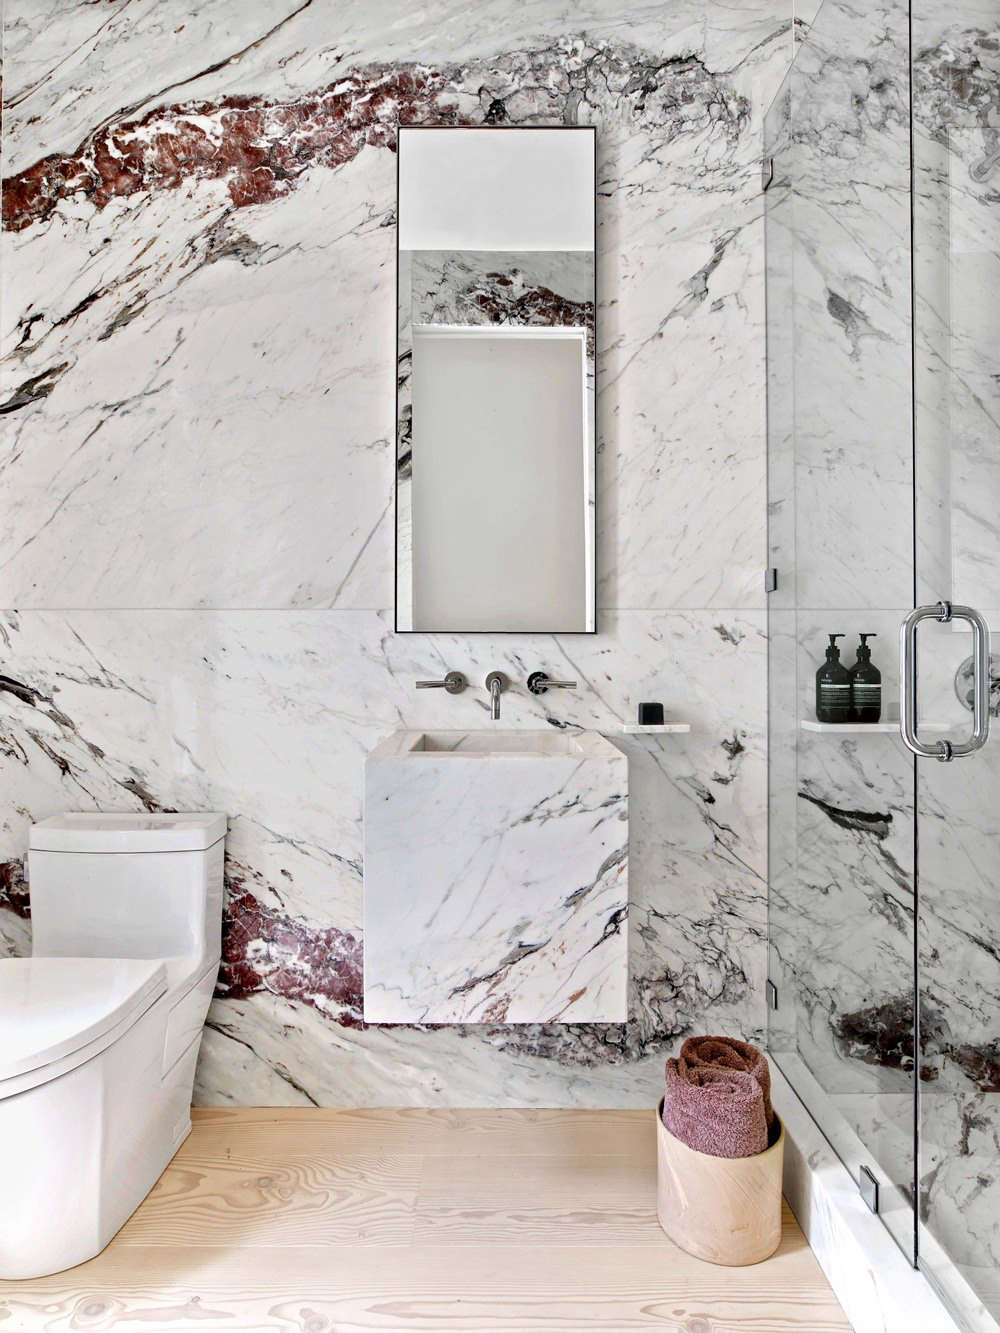 Vote for the Best Professional Bath in Our Design Awards - Remodelista